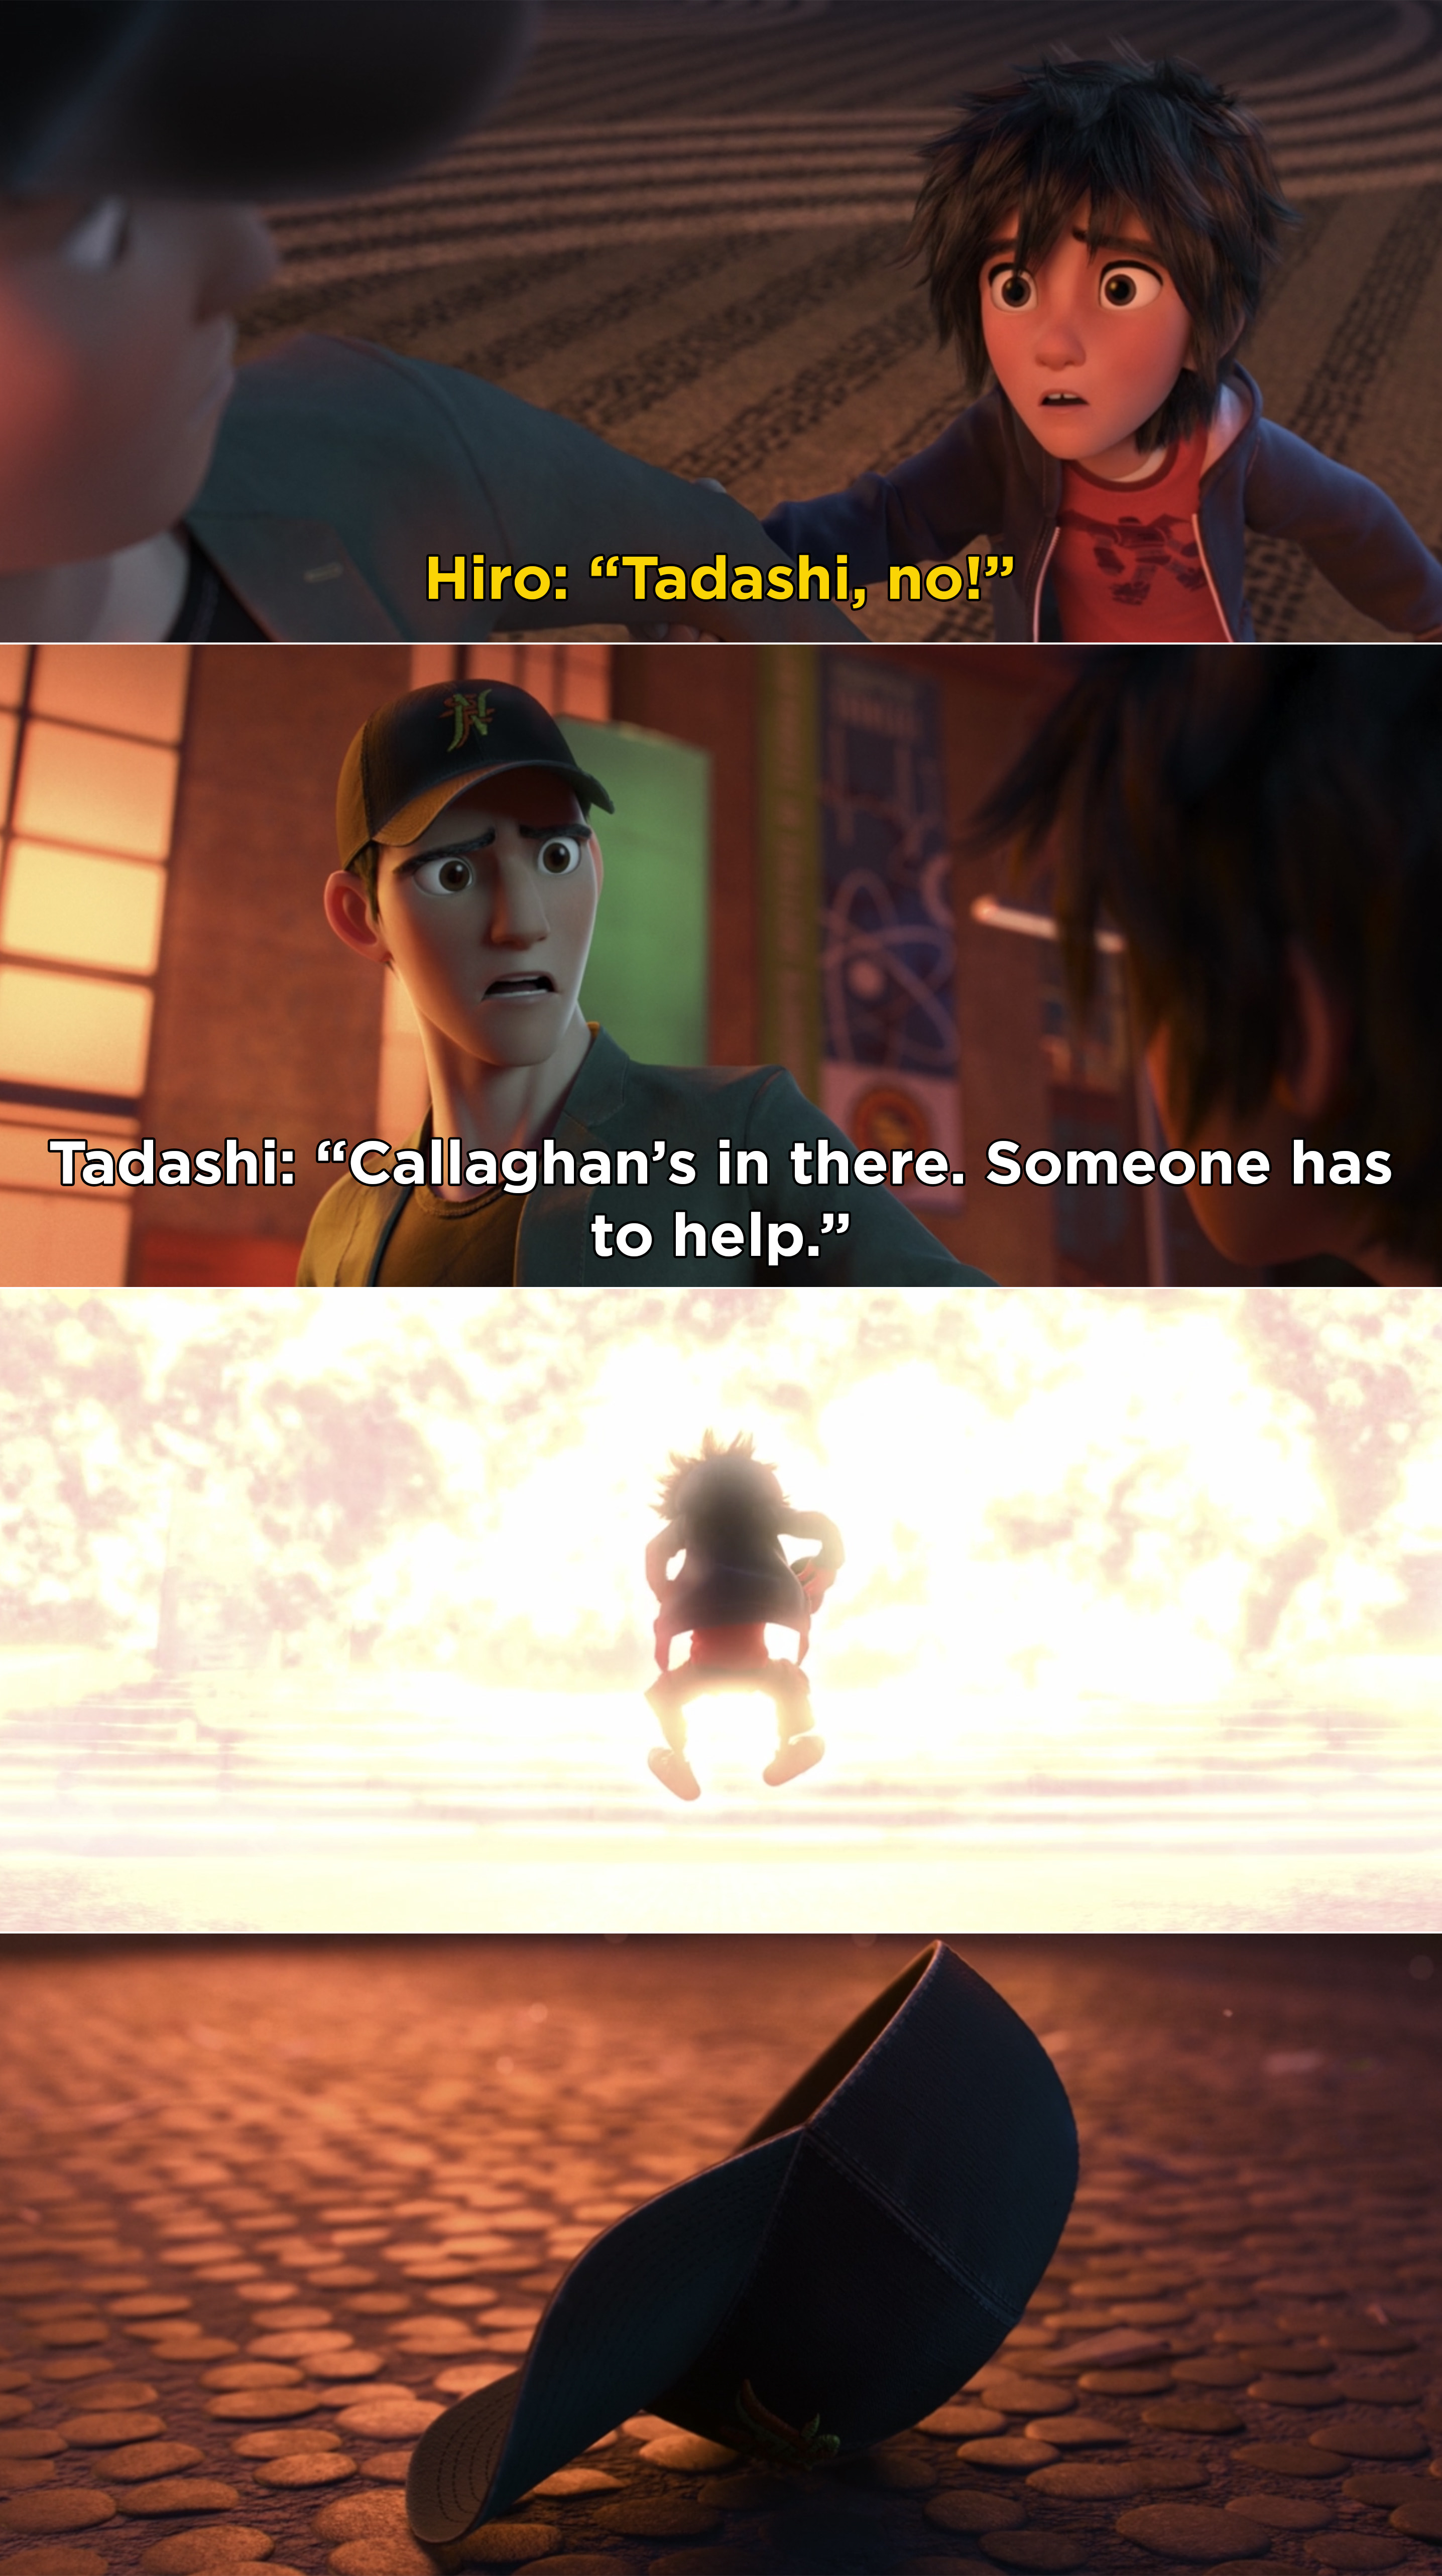 Hiro begging Tadashi not to go back into the building, and then the building exploding